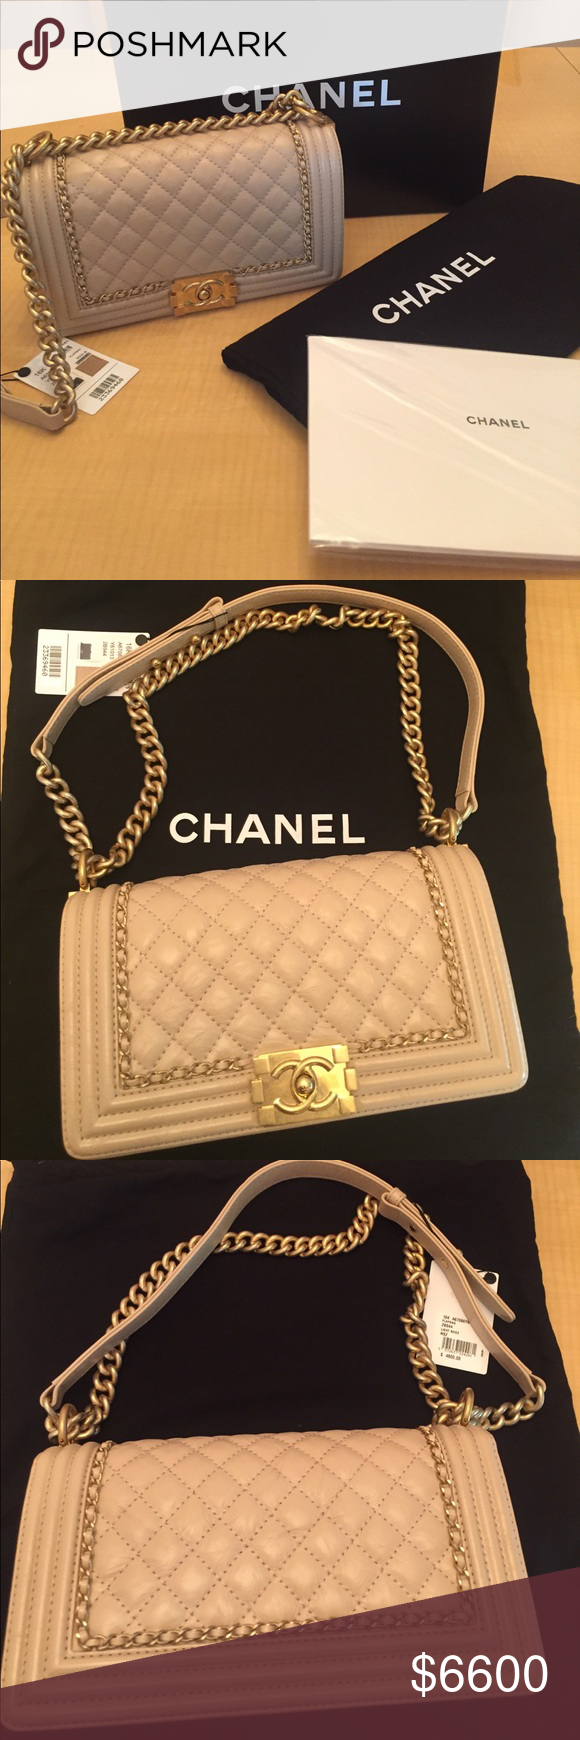 4a684d3c63b5 Brand New Chanel Boy Bag Beige with Gold Hardware 100% Authentic!!! Sold ‼